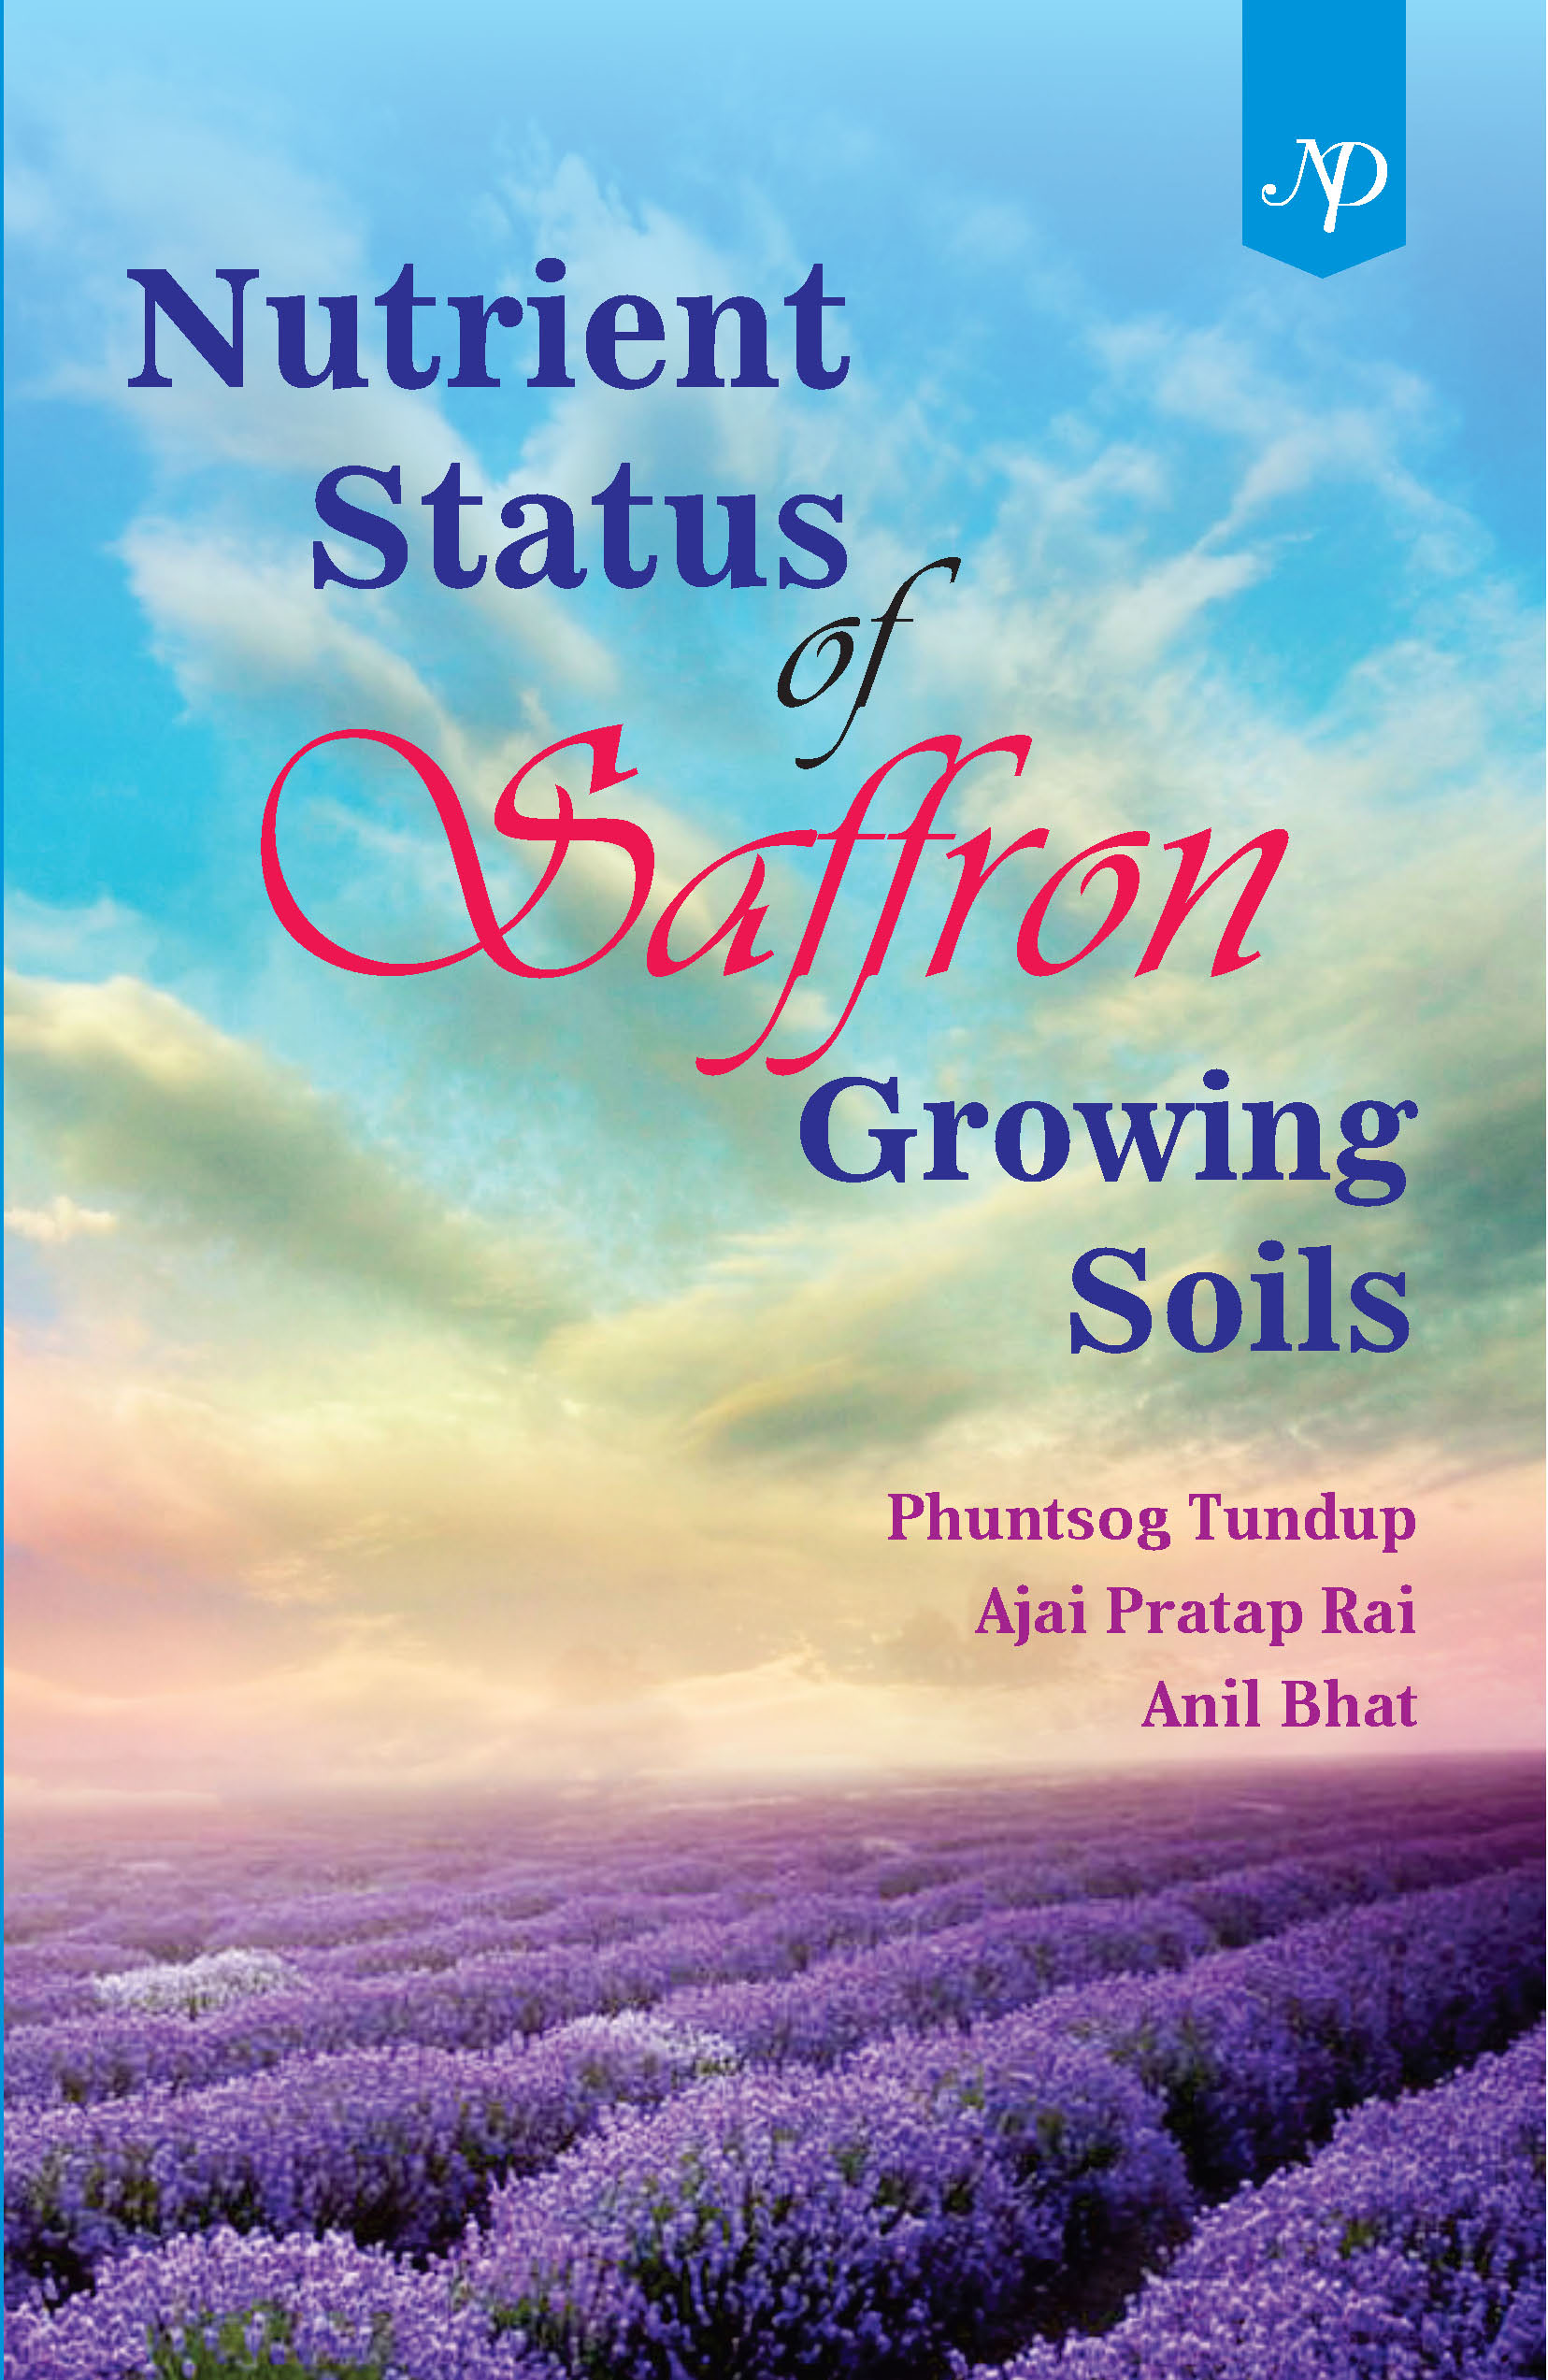 NUTRIENT STATUS OF SAFFRON GROWING SOILS.jpg